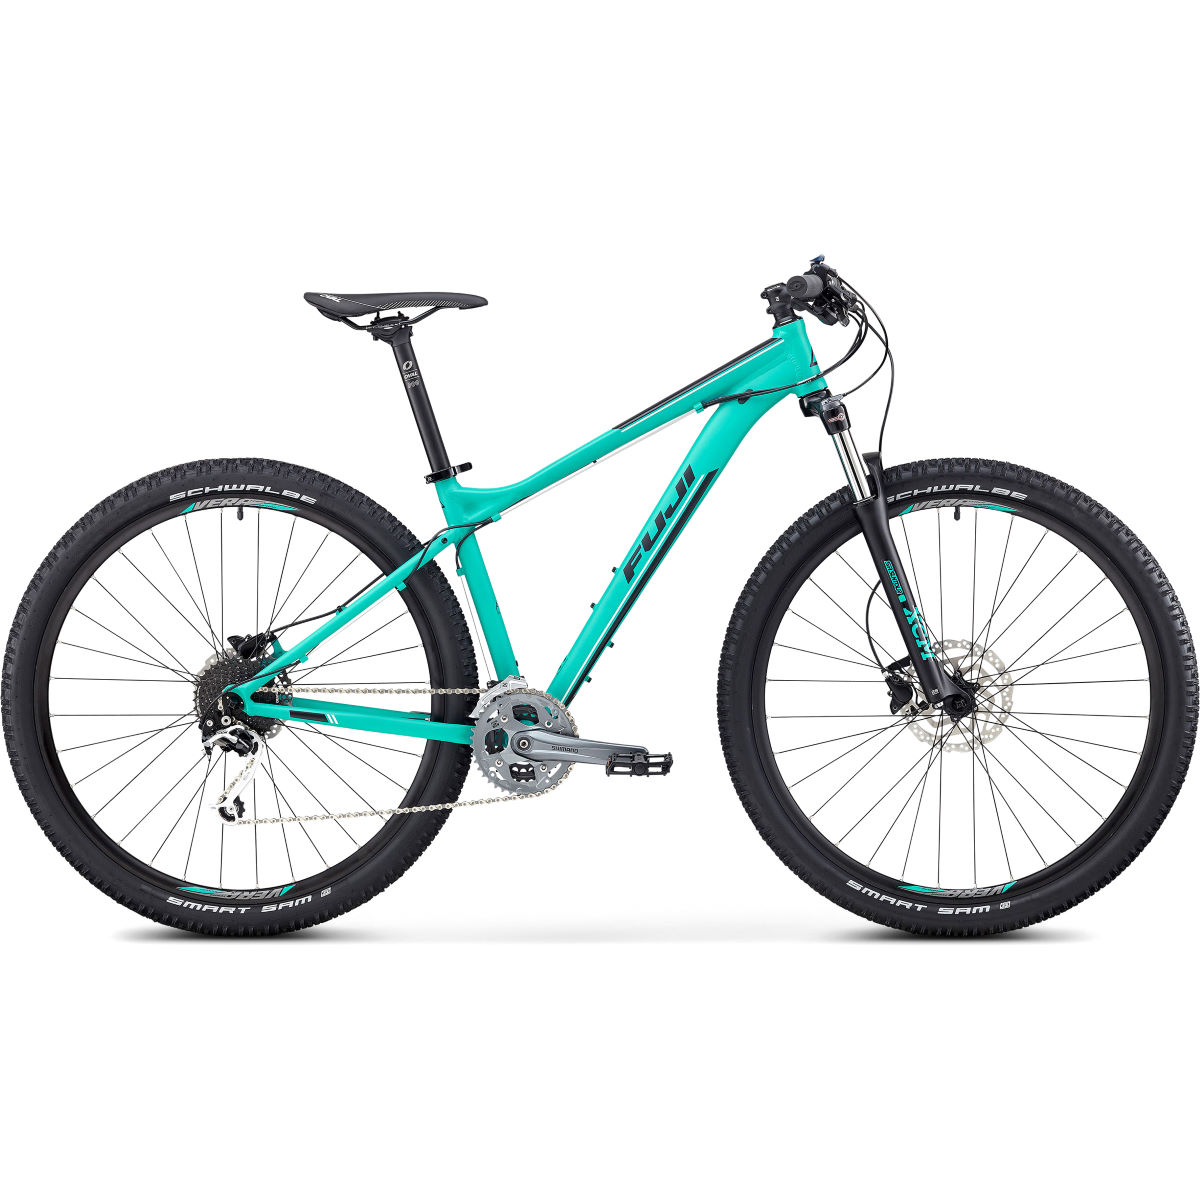 VTT semi-rigide Fuji Nevada 29 1.3 - 48cm(19'') Stock Bike